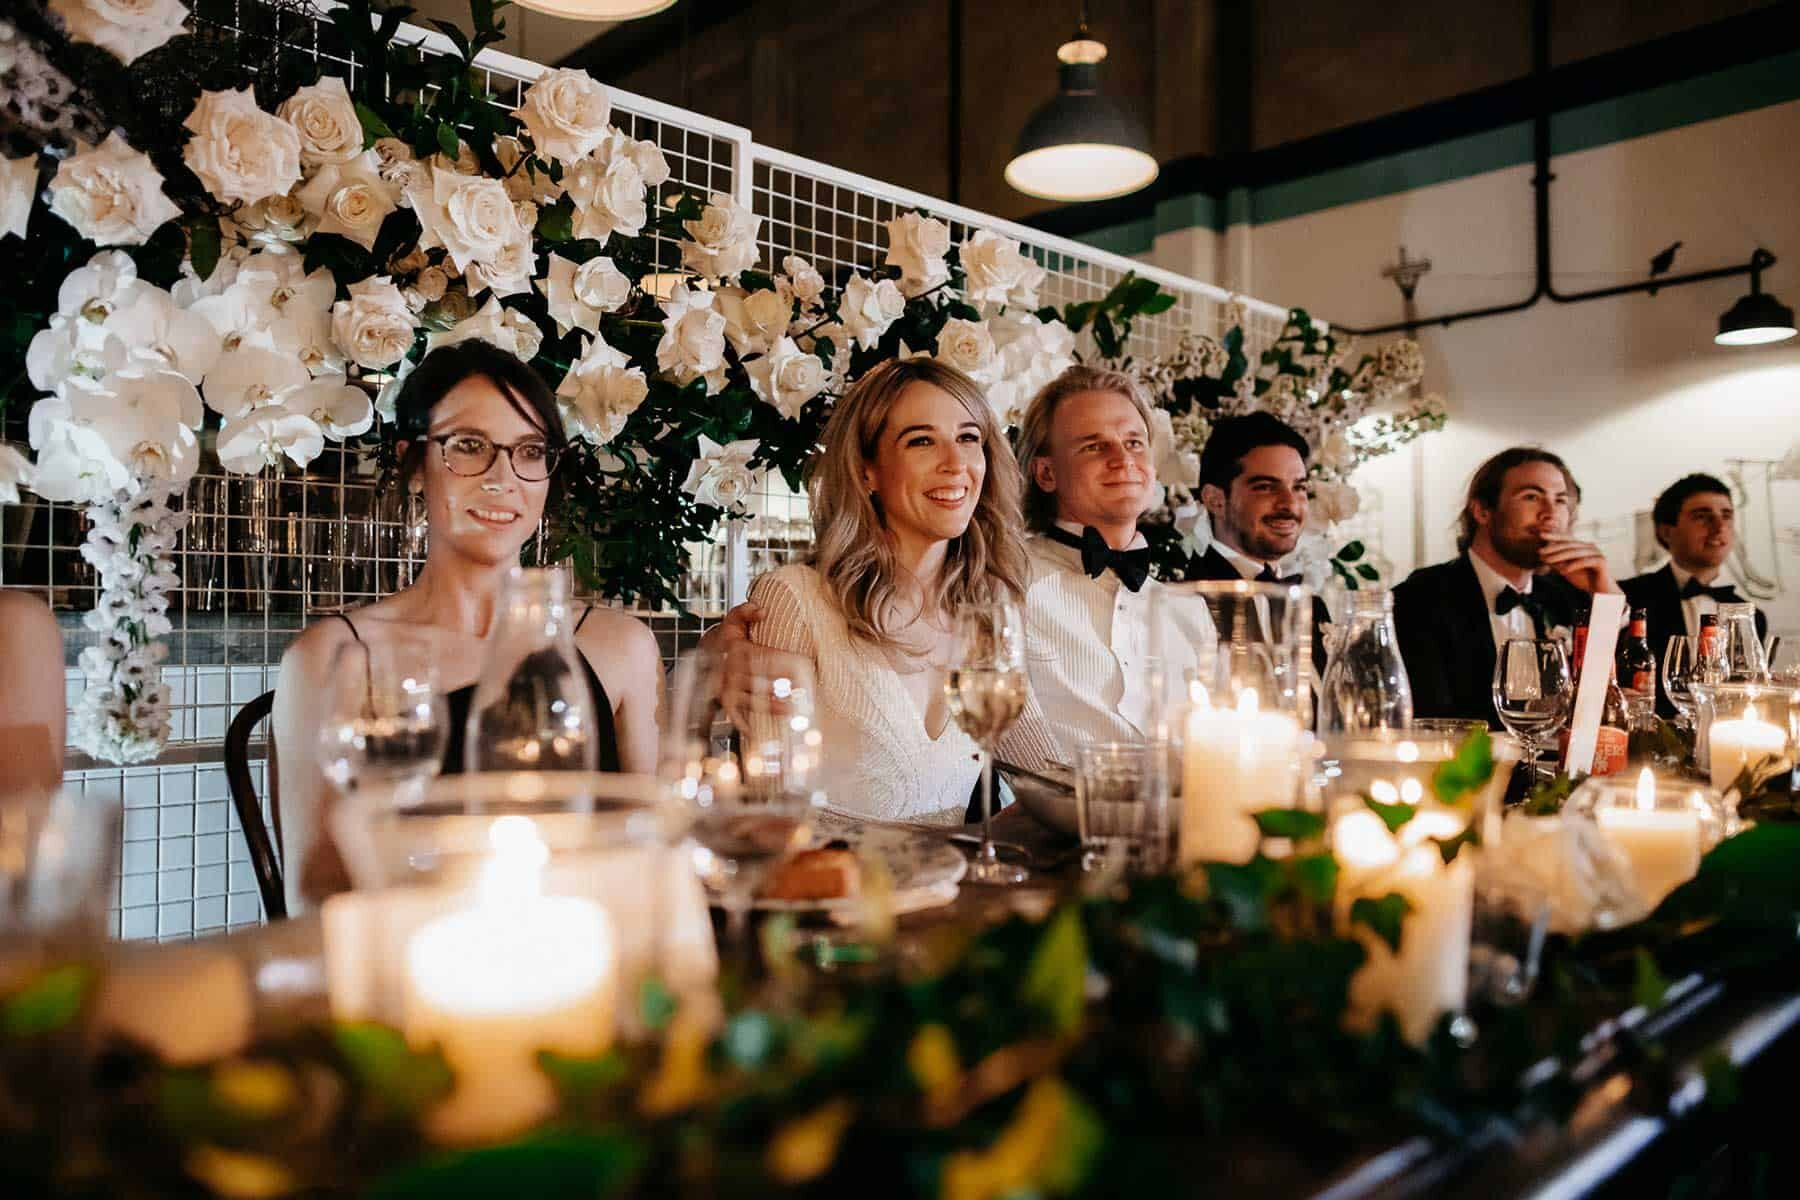 modern and elegant warehouse wedding at Gordon St Garage, Perth. Photography by Adam Levi Browne